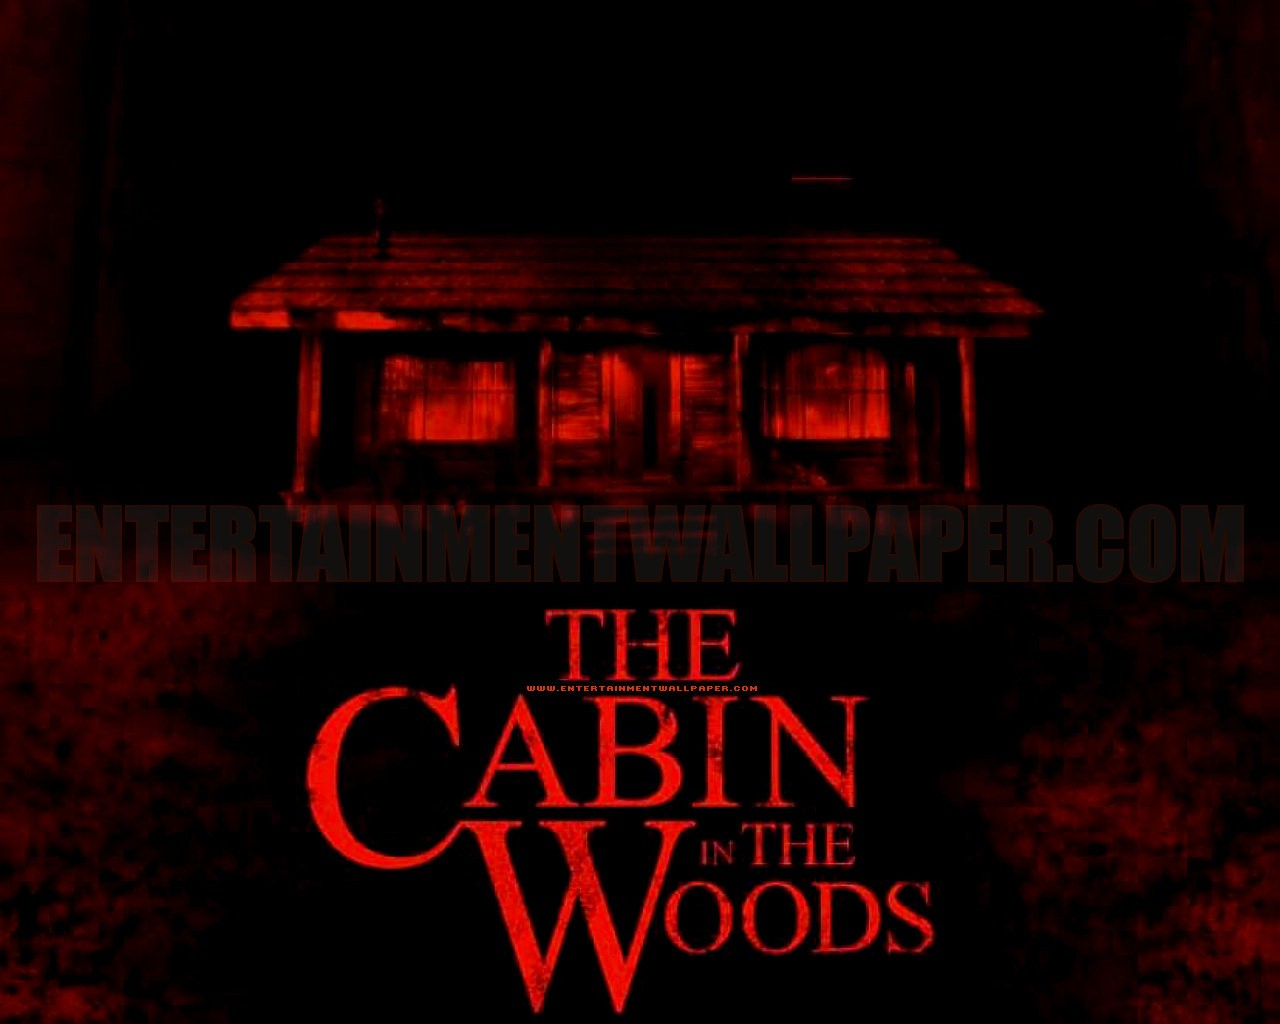 Free Download The Cabin In The Woods Wallpaper 10030025 1280x1024